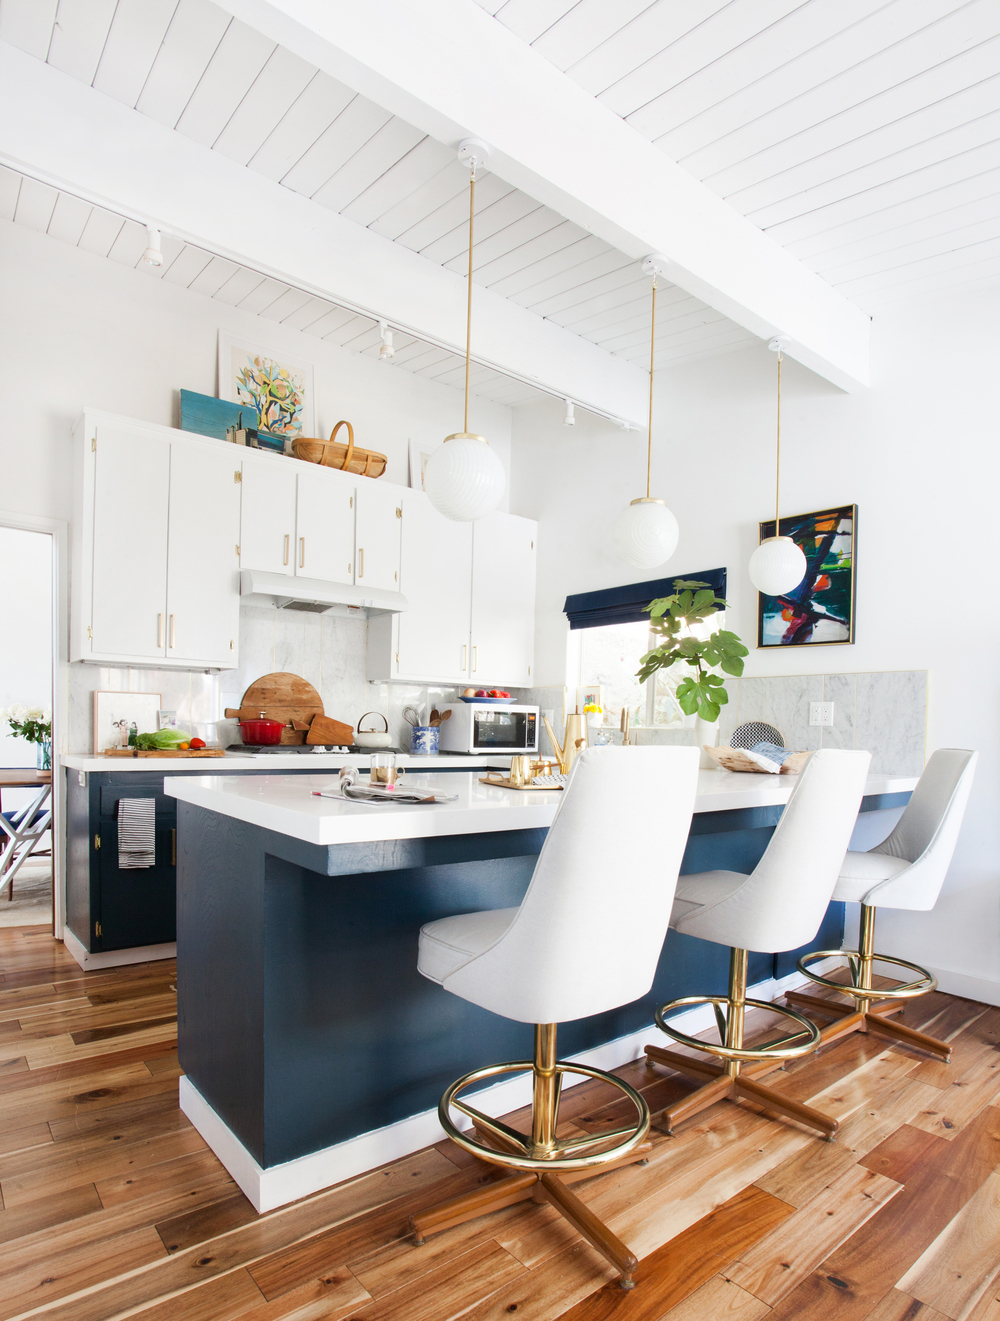 kitchen_after-emily-henderson-blue-white-brass-stools-overall.jpg